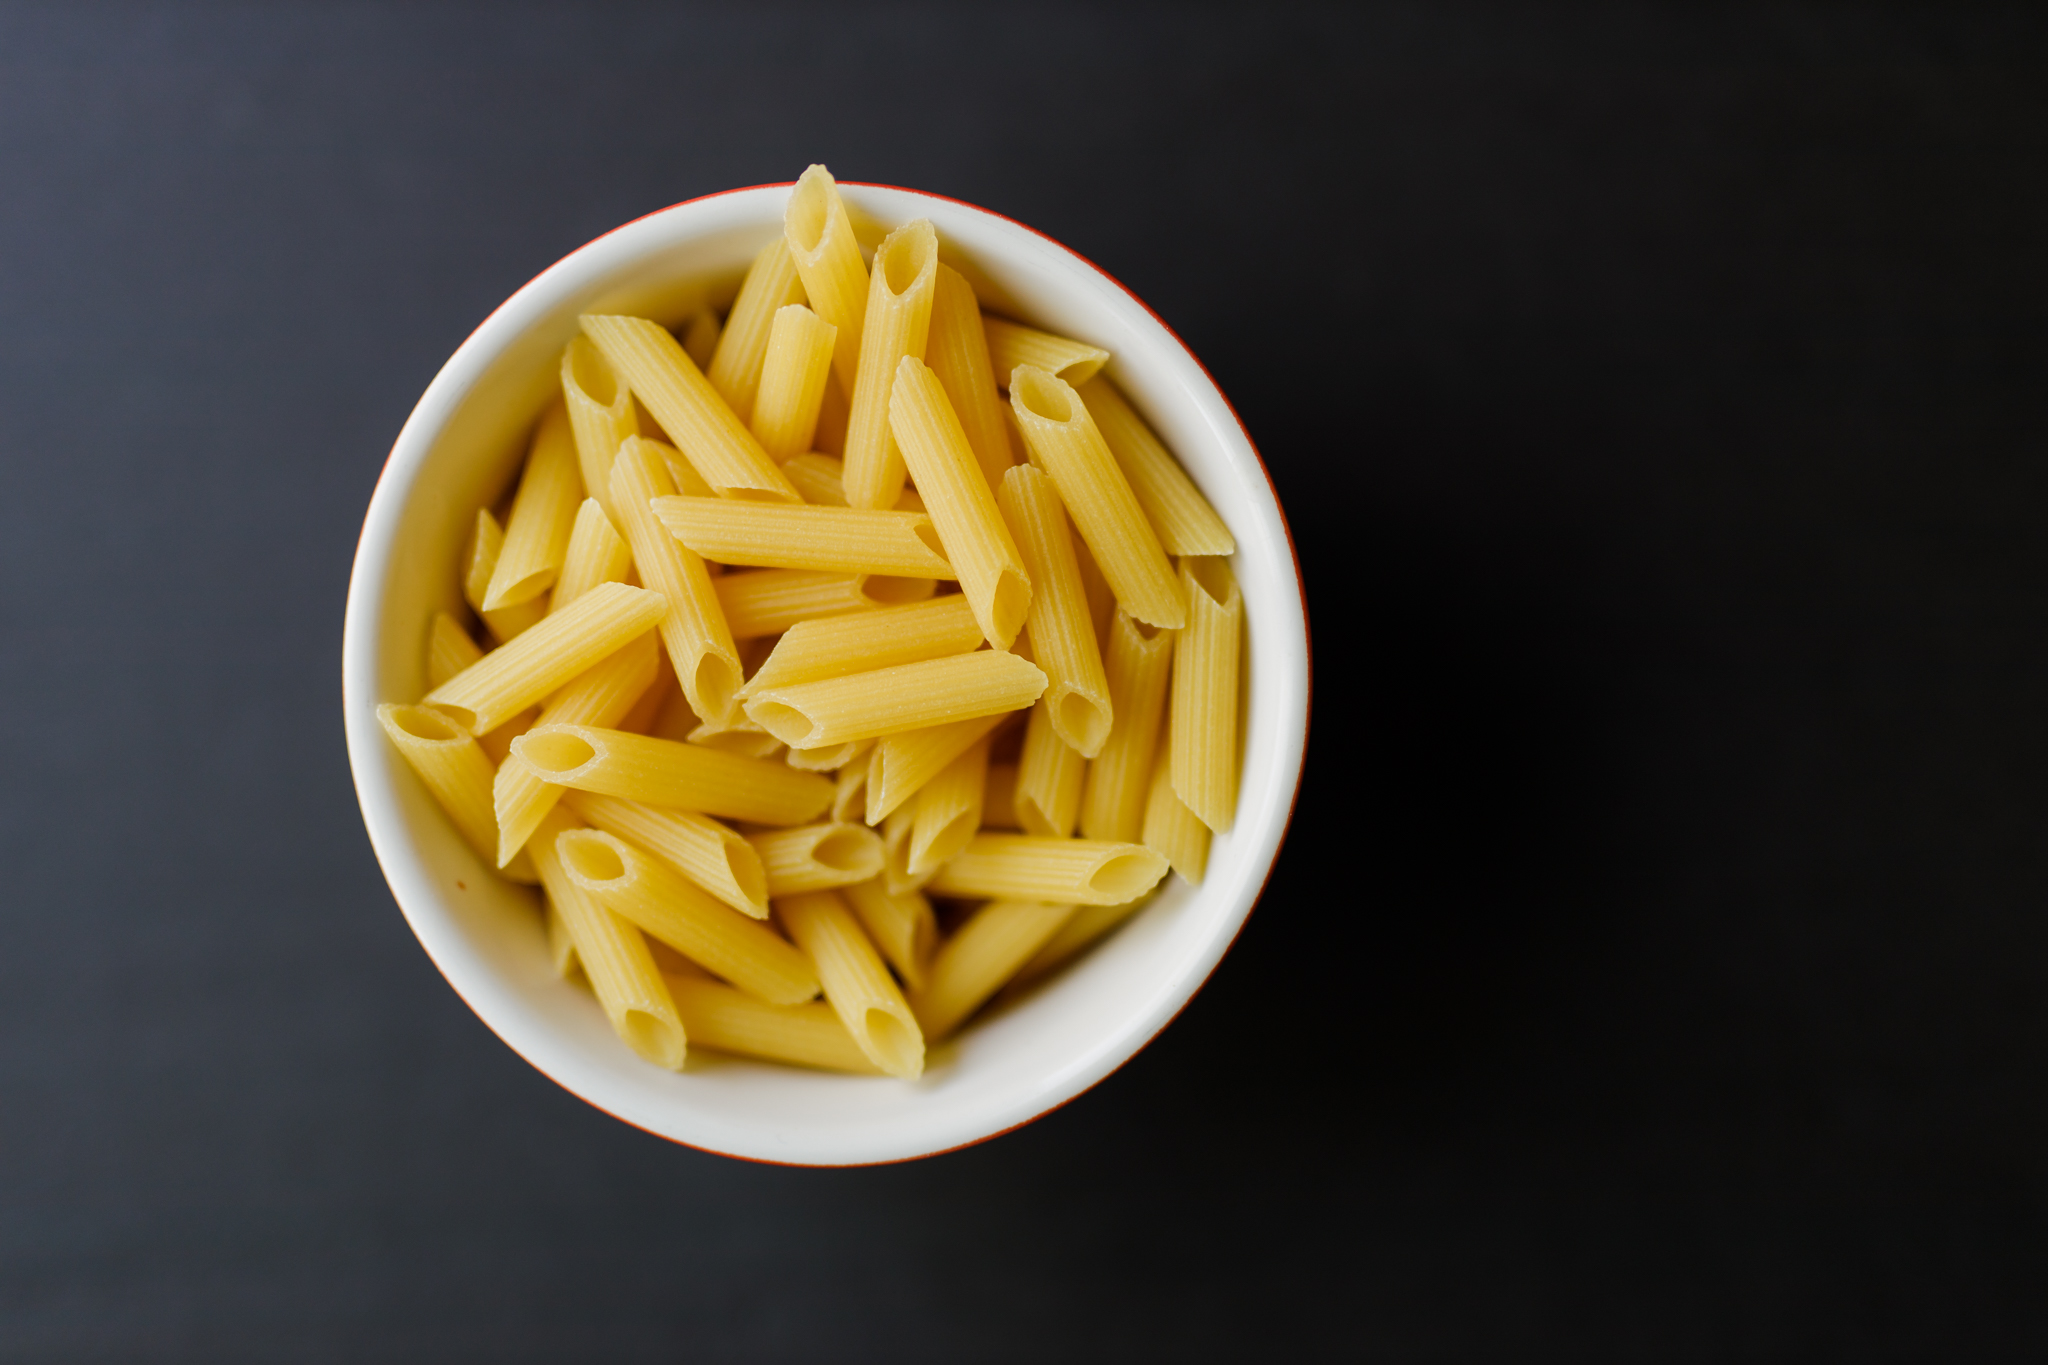 uncooked gluten free pasta in a bowl